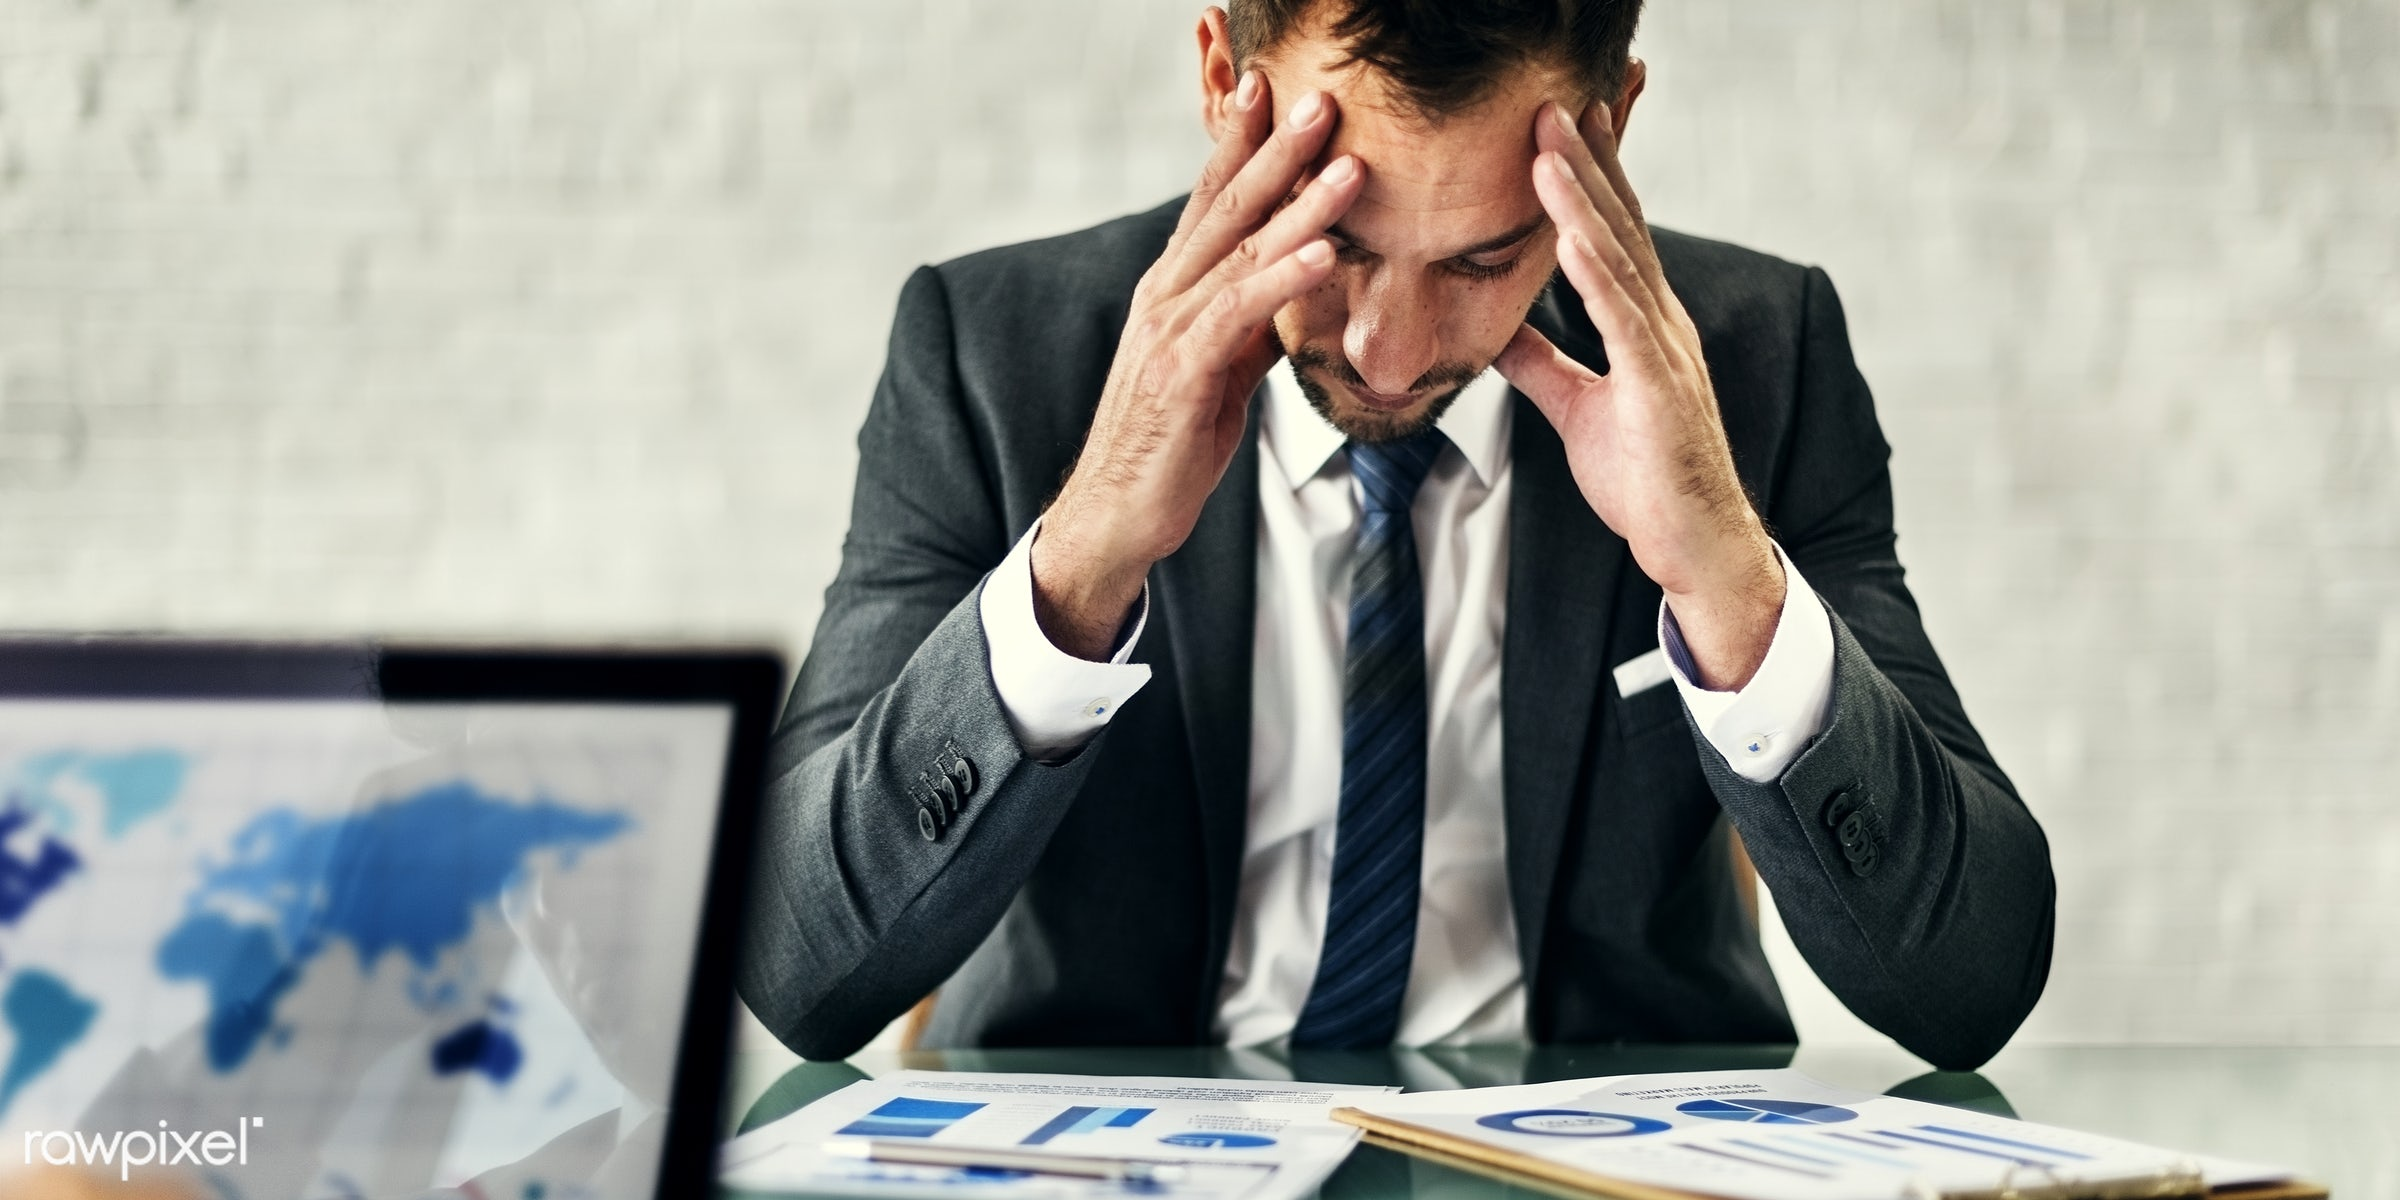 stress, thinking, computer, businessman, busy, plan, investment, leader, planning, meeting, entrepreneur, business chart,...